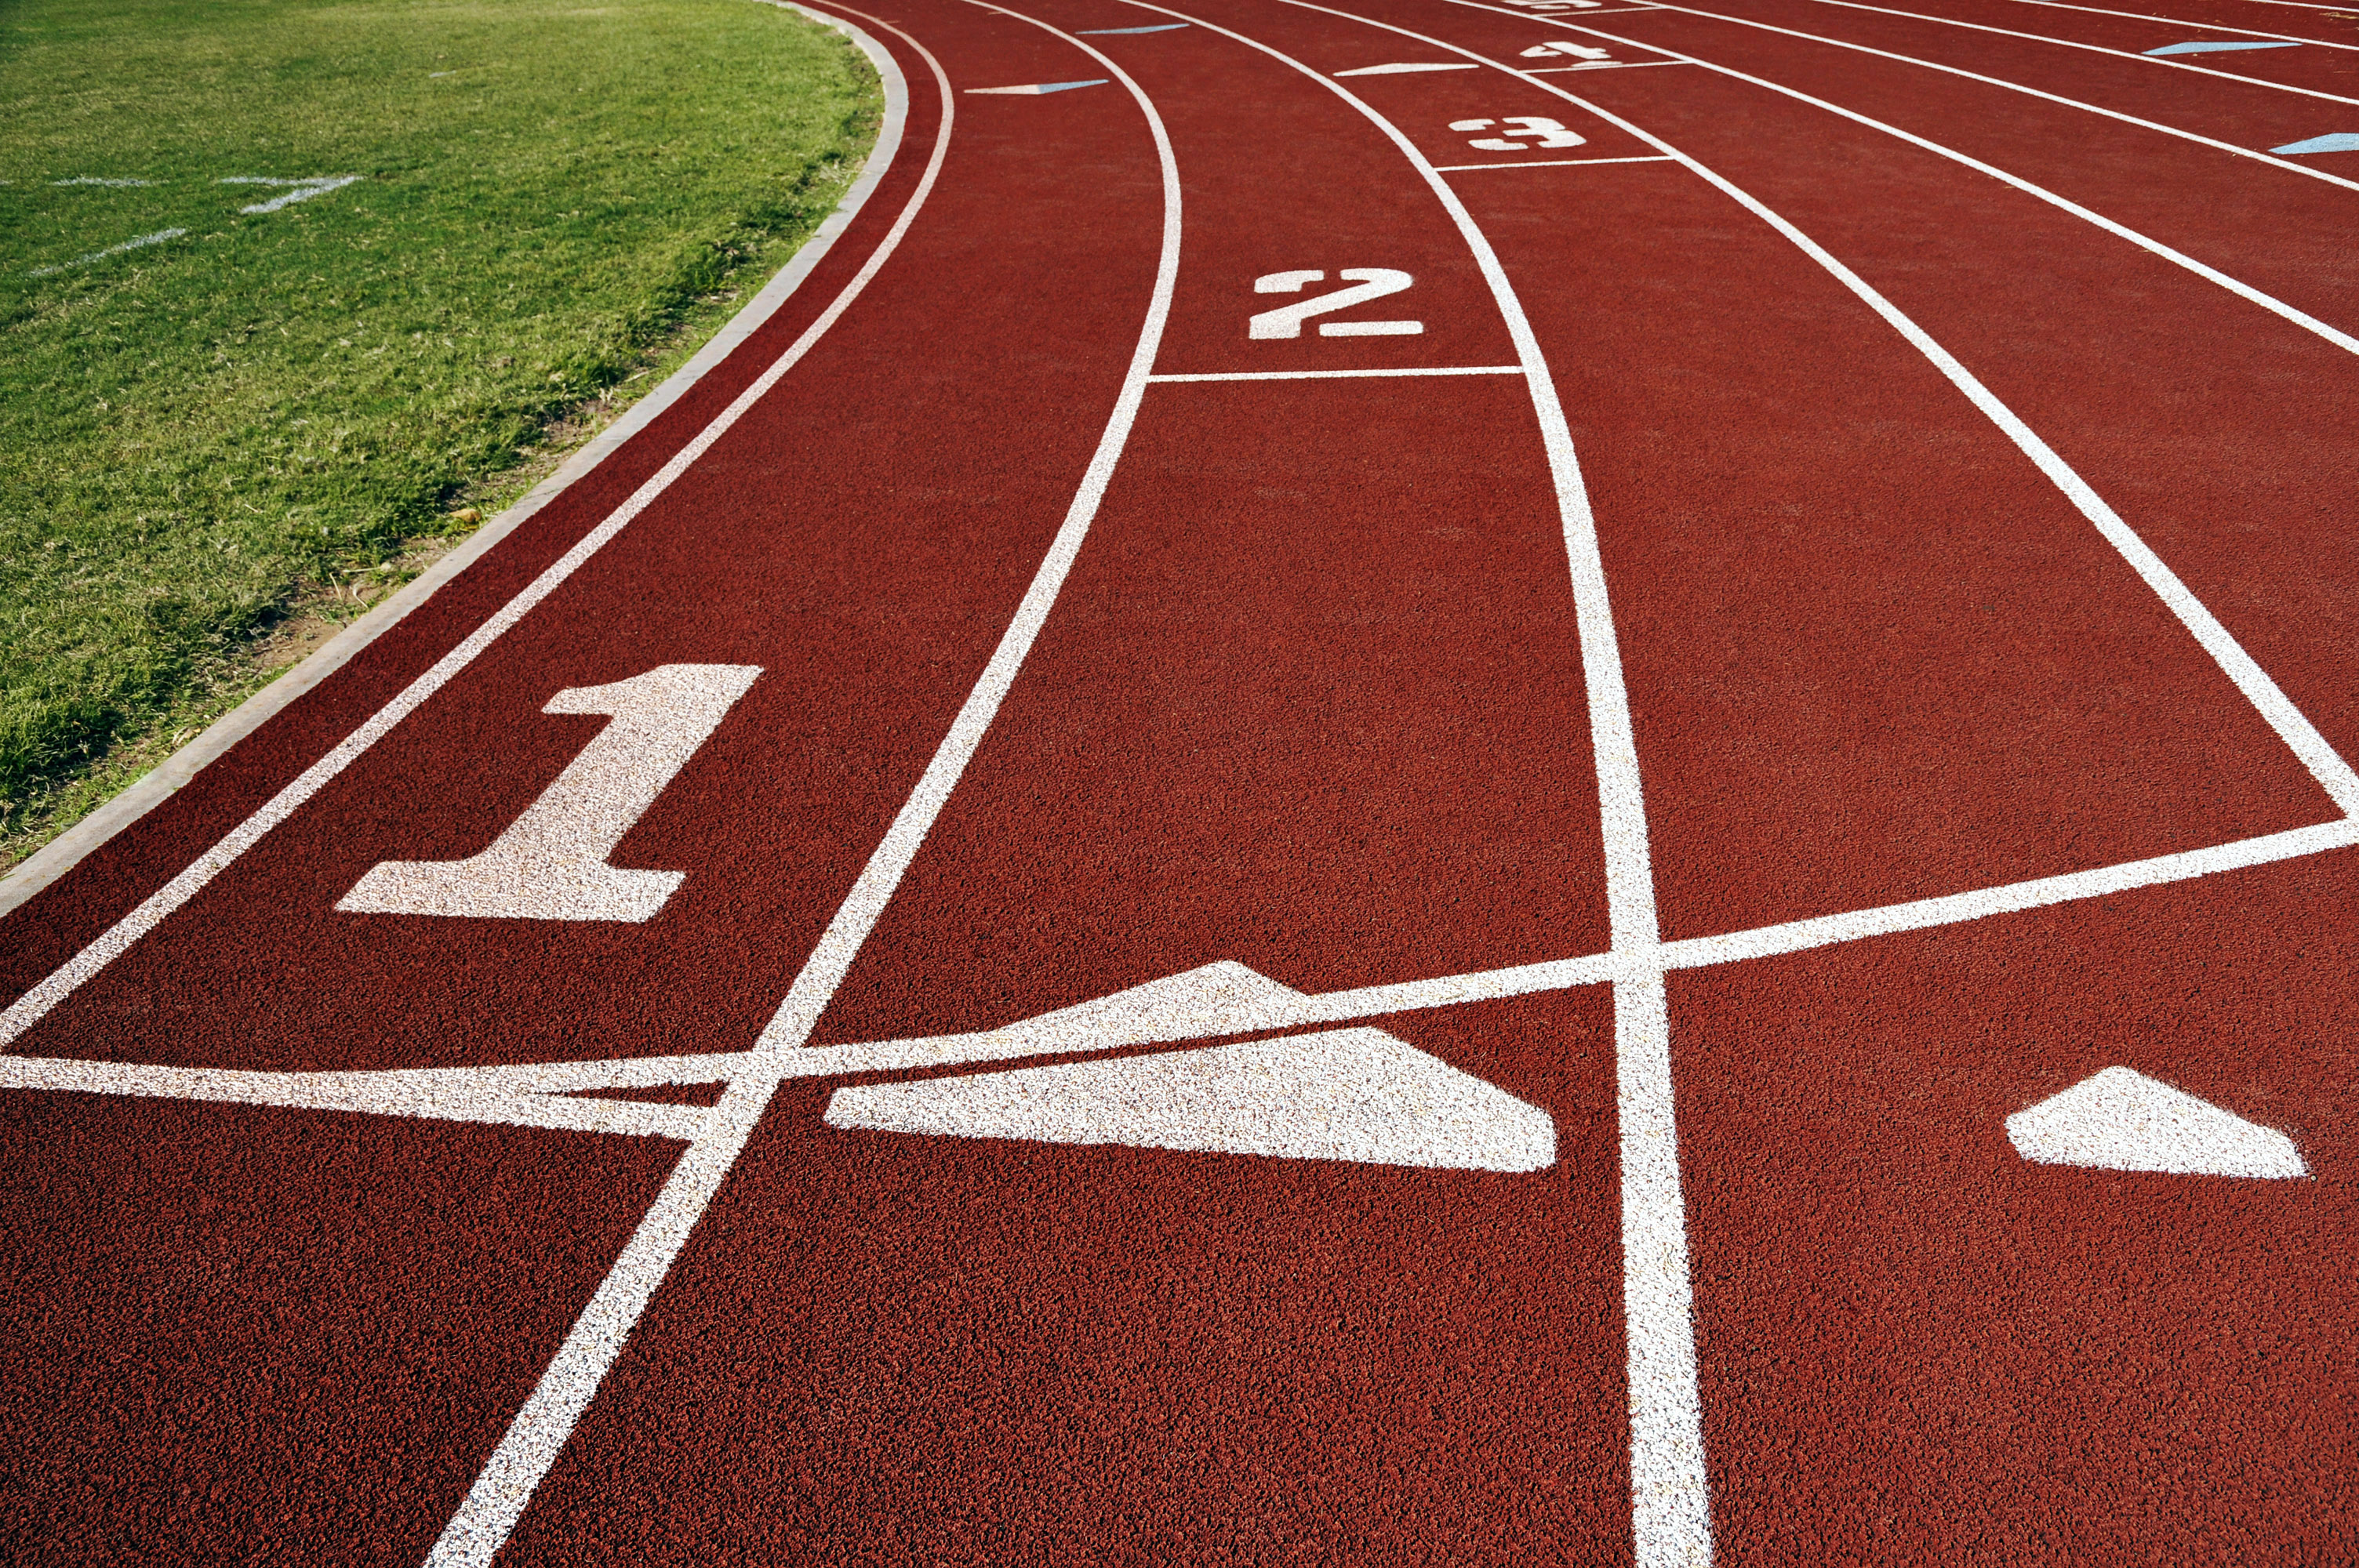 Interval Training On Track